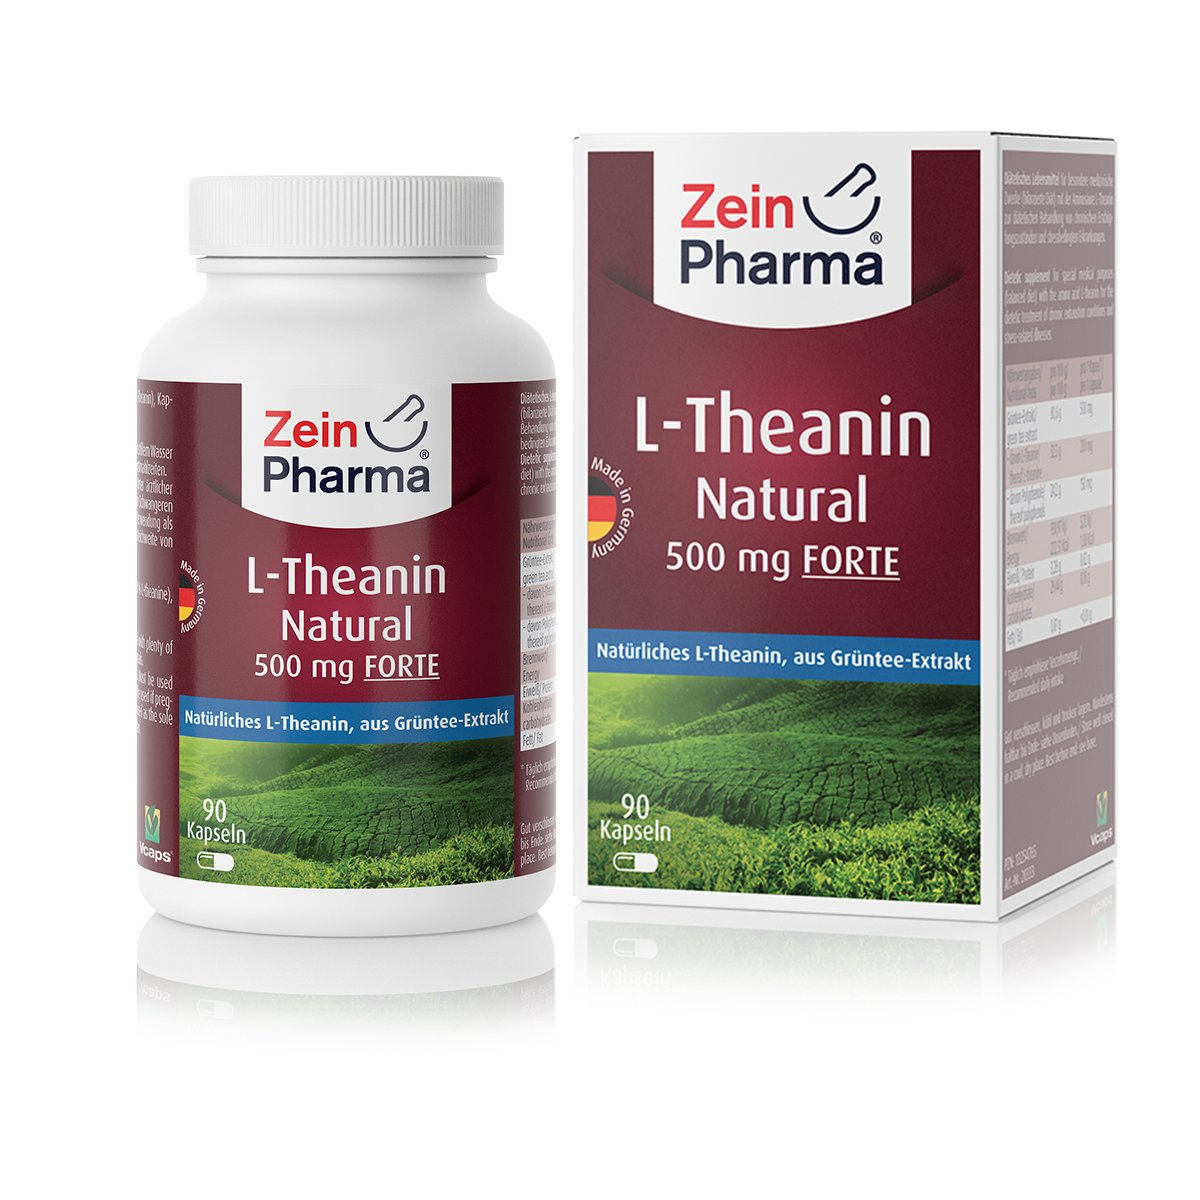 L-Theanin Natural Forte 500 mg - 90 Kapseln